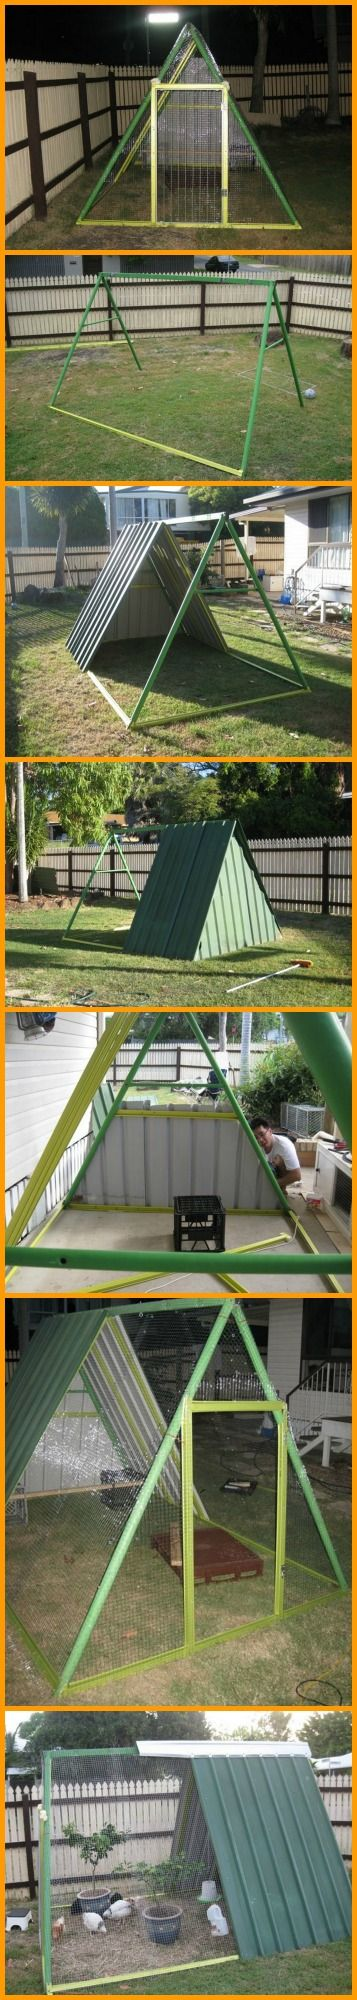 We love ingenuity. This chicken coop made from an old swing set is a good example. http://theownerbuildernetwork.co/04su